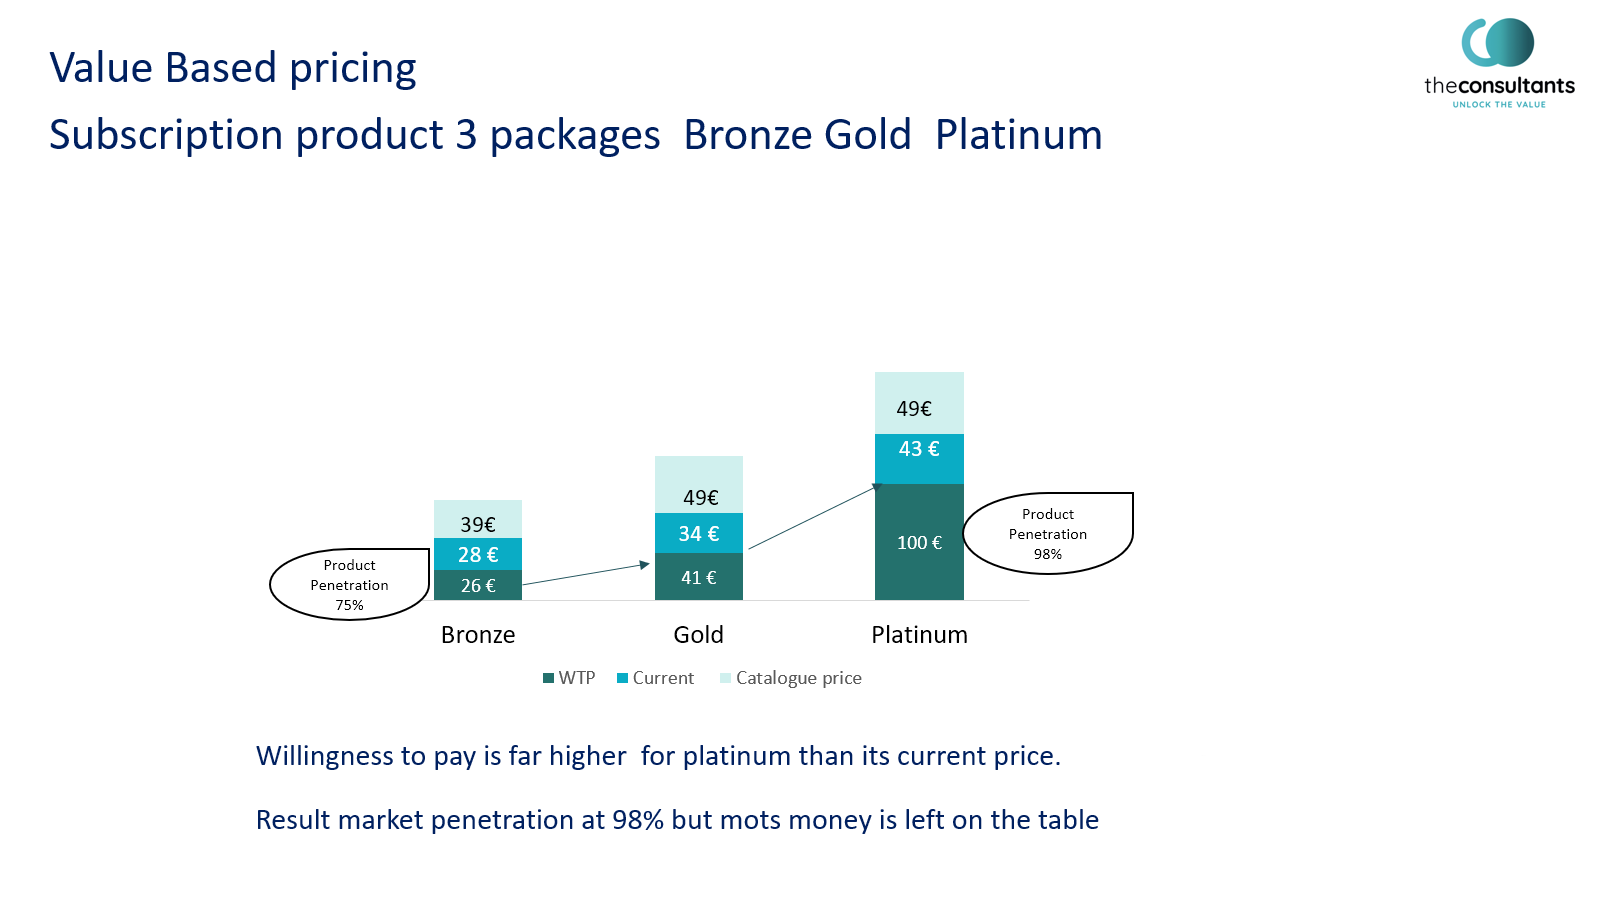 Value based pricing strategy